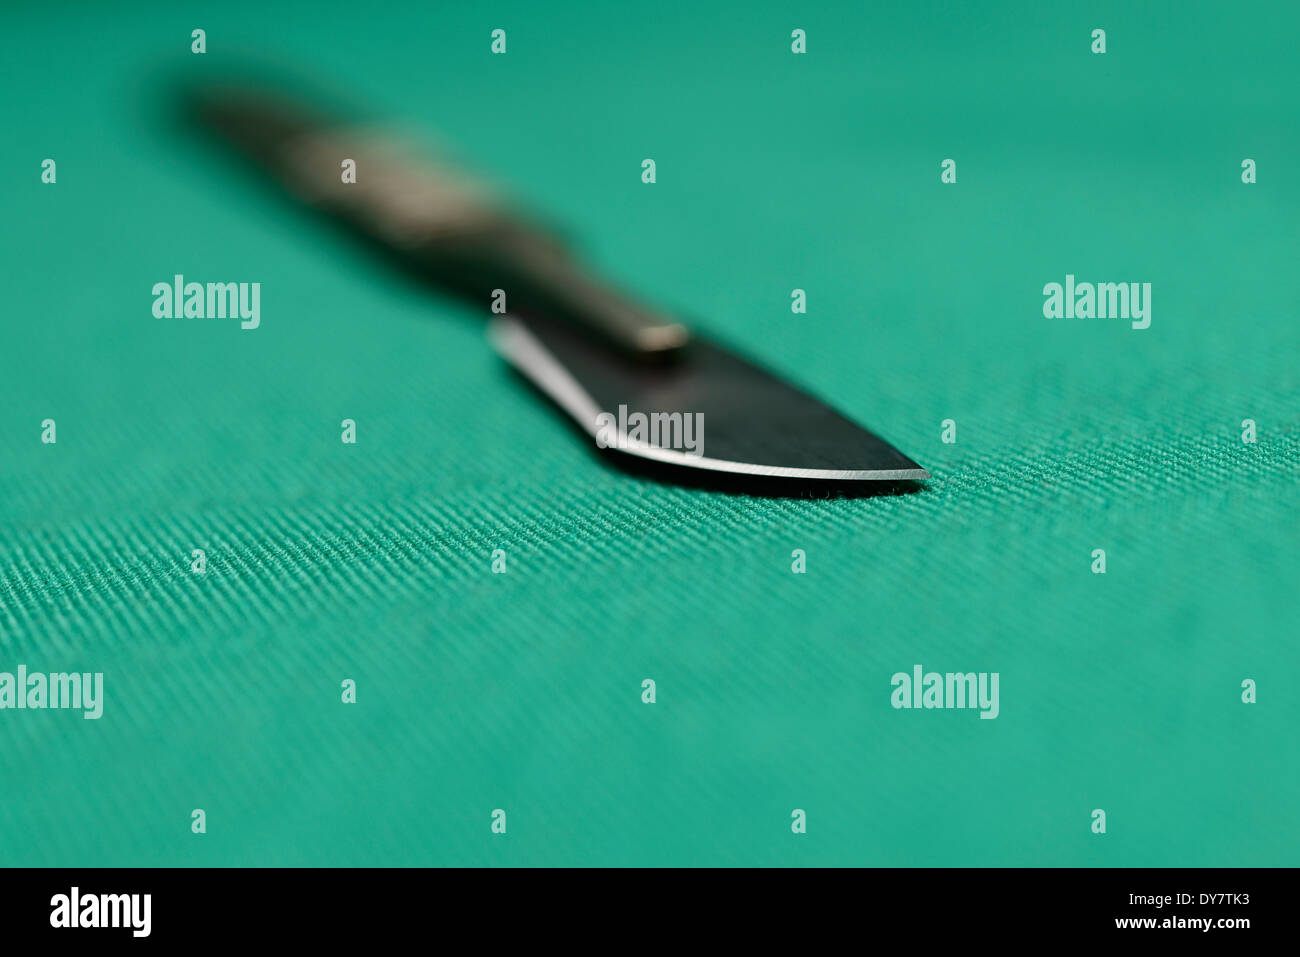 Surgical Instruments - a sharp, two-piece scalpel on green surgical drapes, shot with a shallow depth of field. - Stock Image